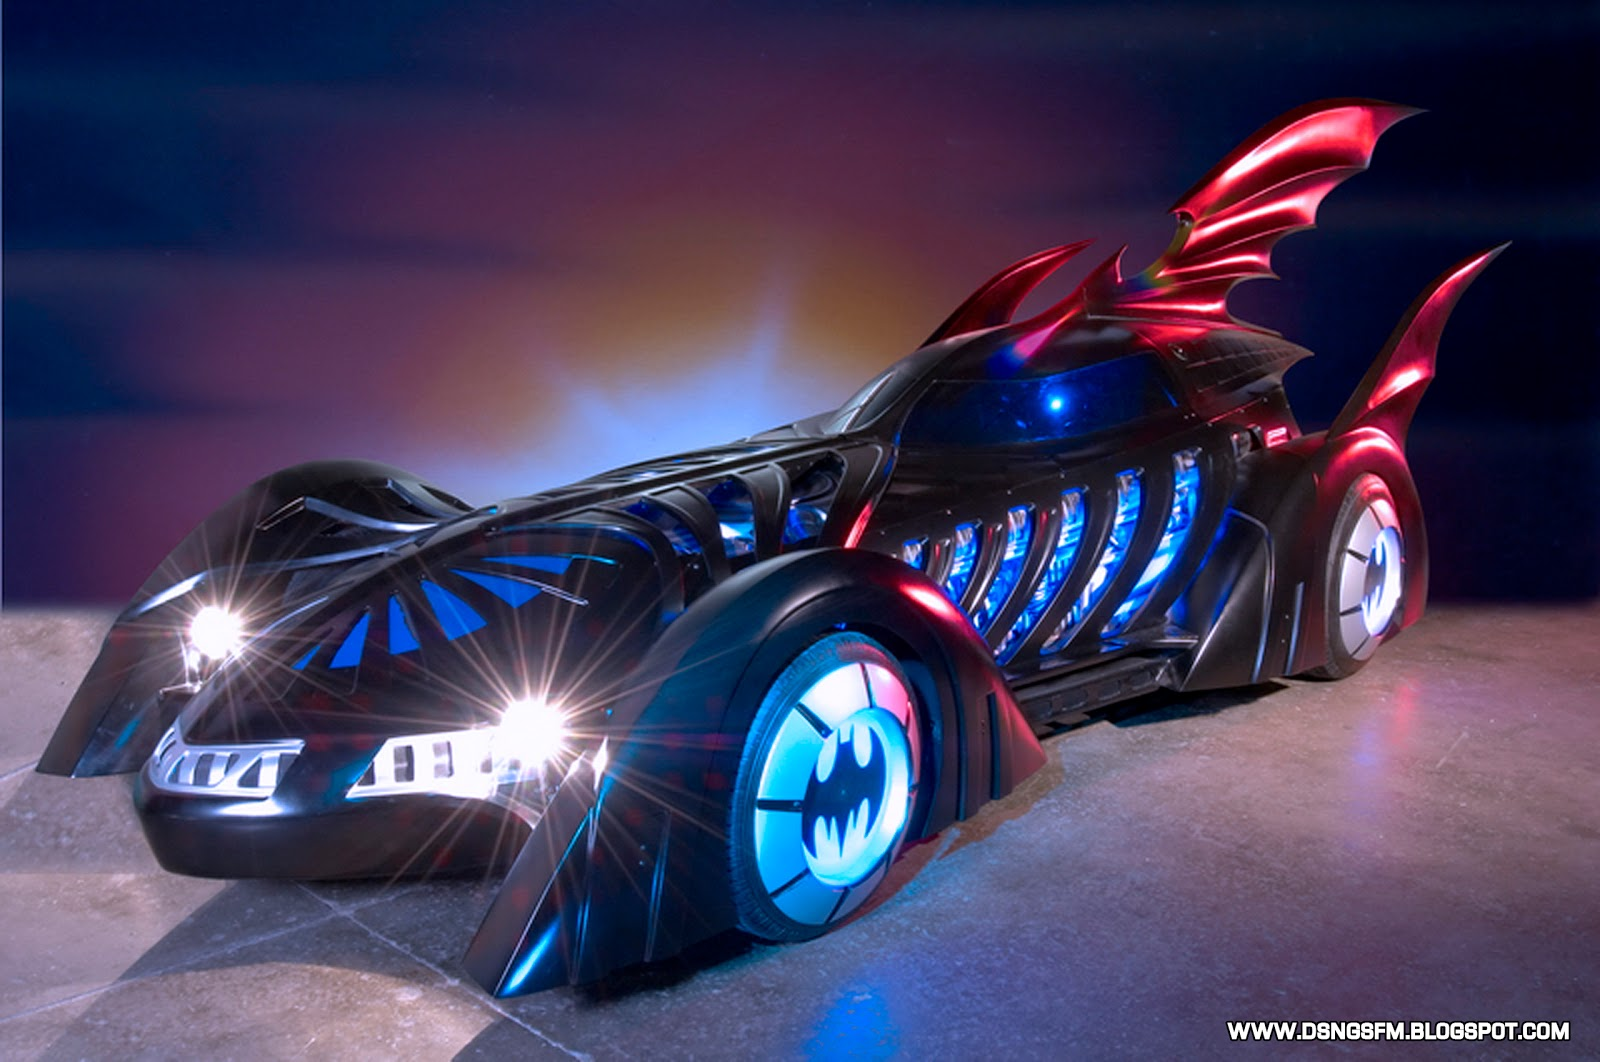 DSNGS SCI FI MEGAVERSE  REAL LIFE NISSAN BATMOBILE  PLUS OTHER